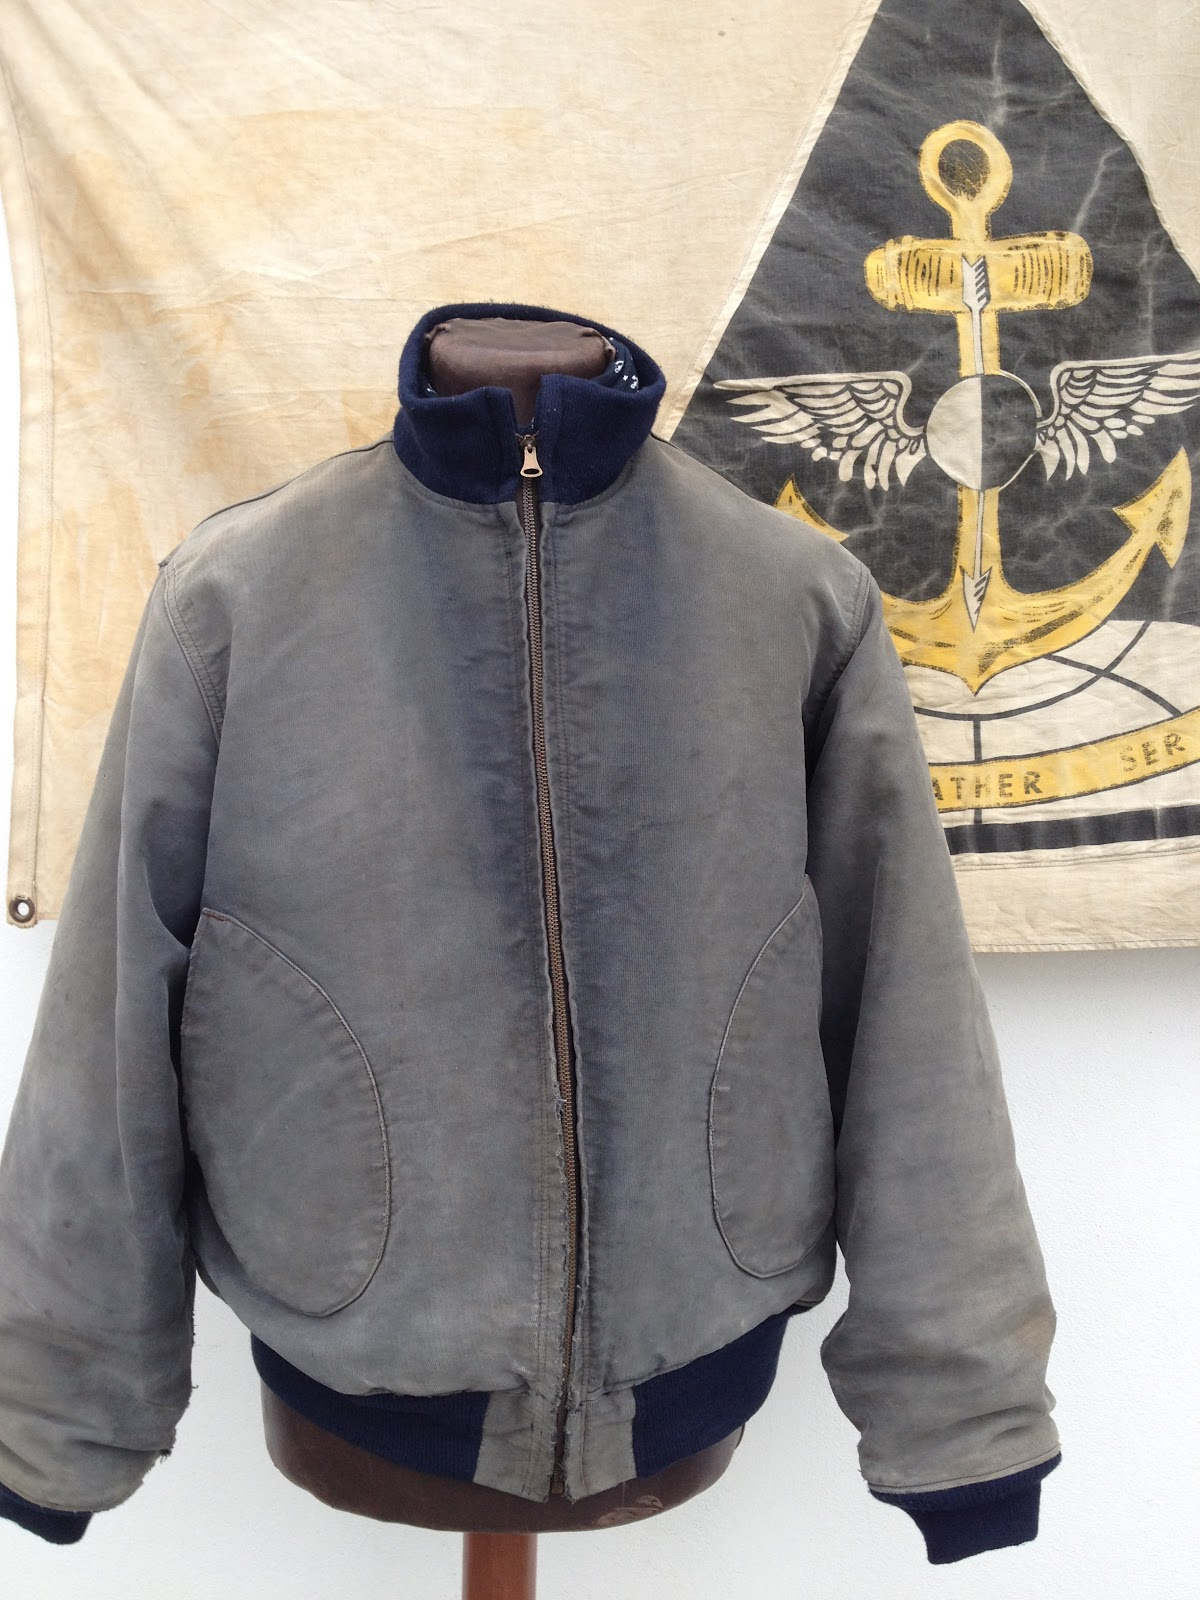 Sanforized 1st Issued Wwii Us Navy Deck Jacket